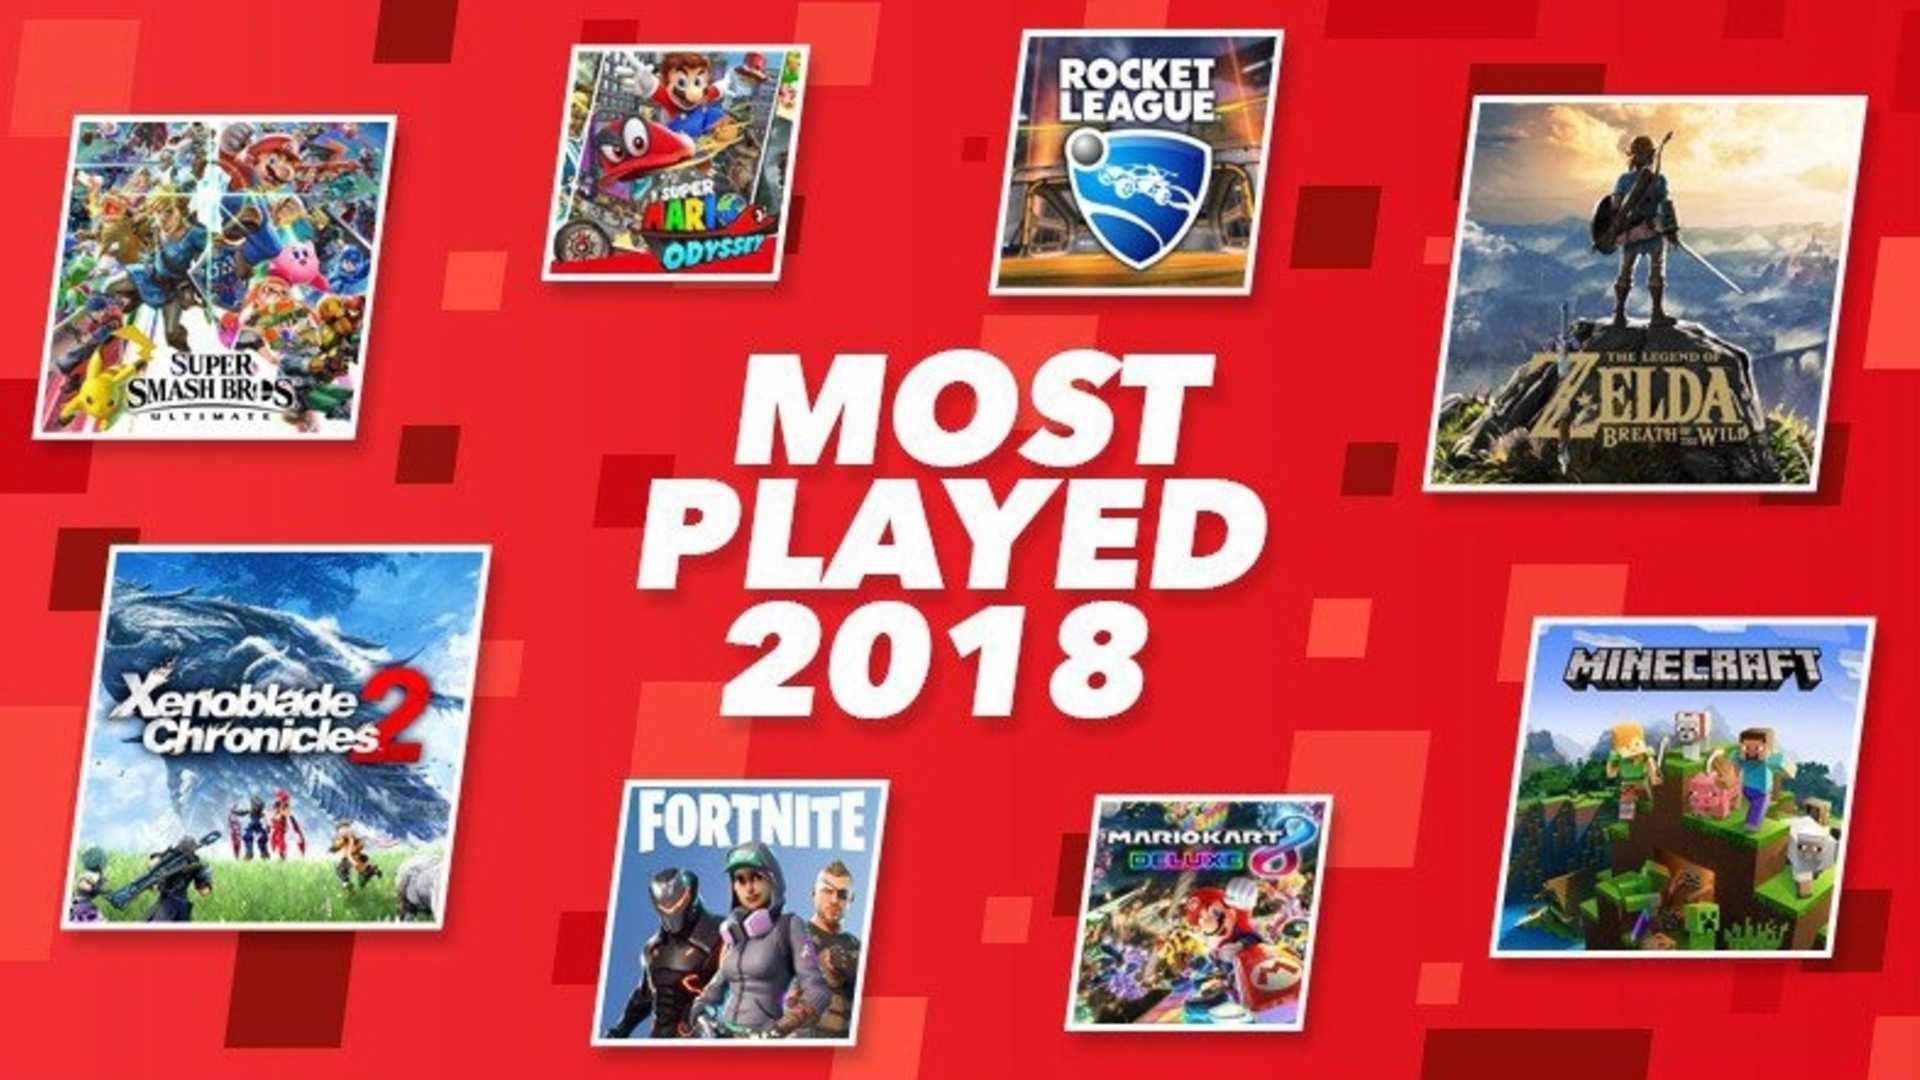 Fortnite was the most-played Nintendo Switch game in Europe last year